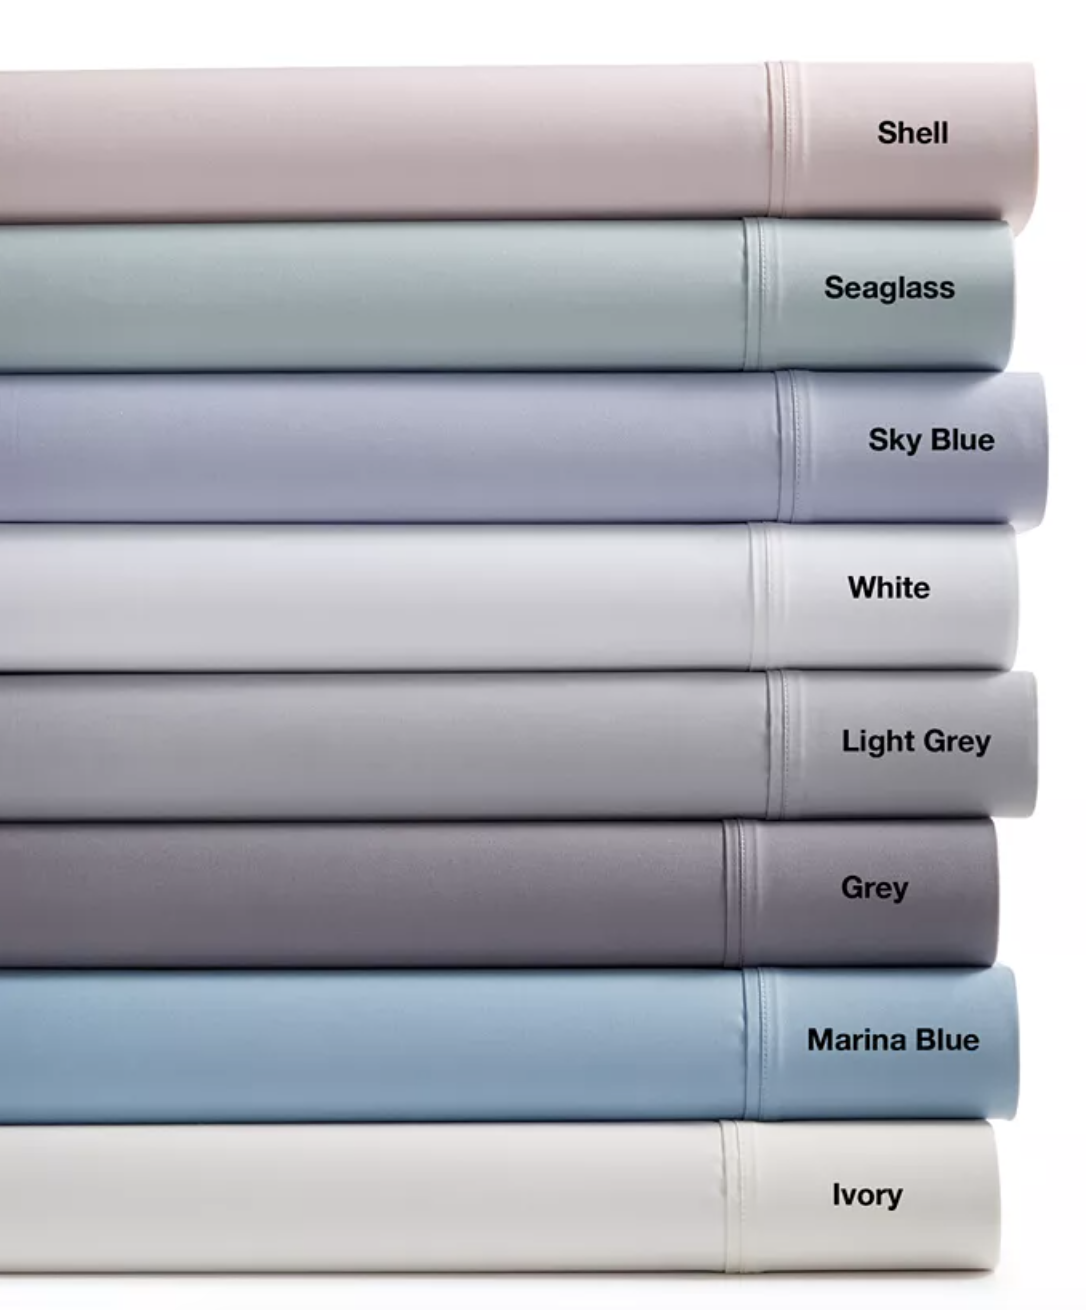 a stack of sheets in different colors